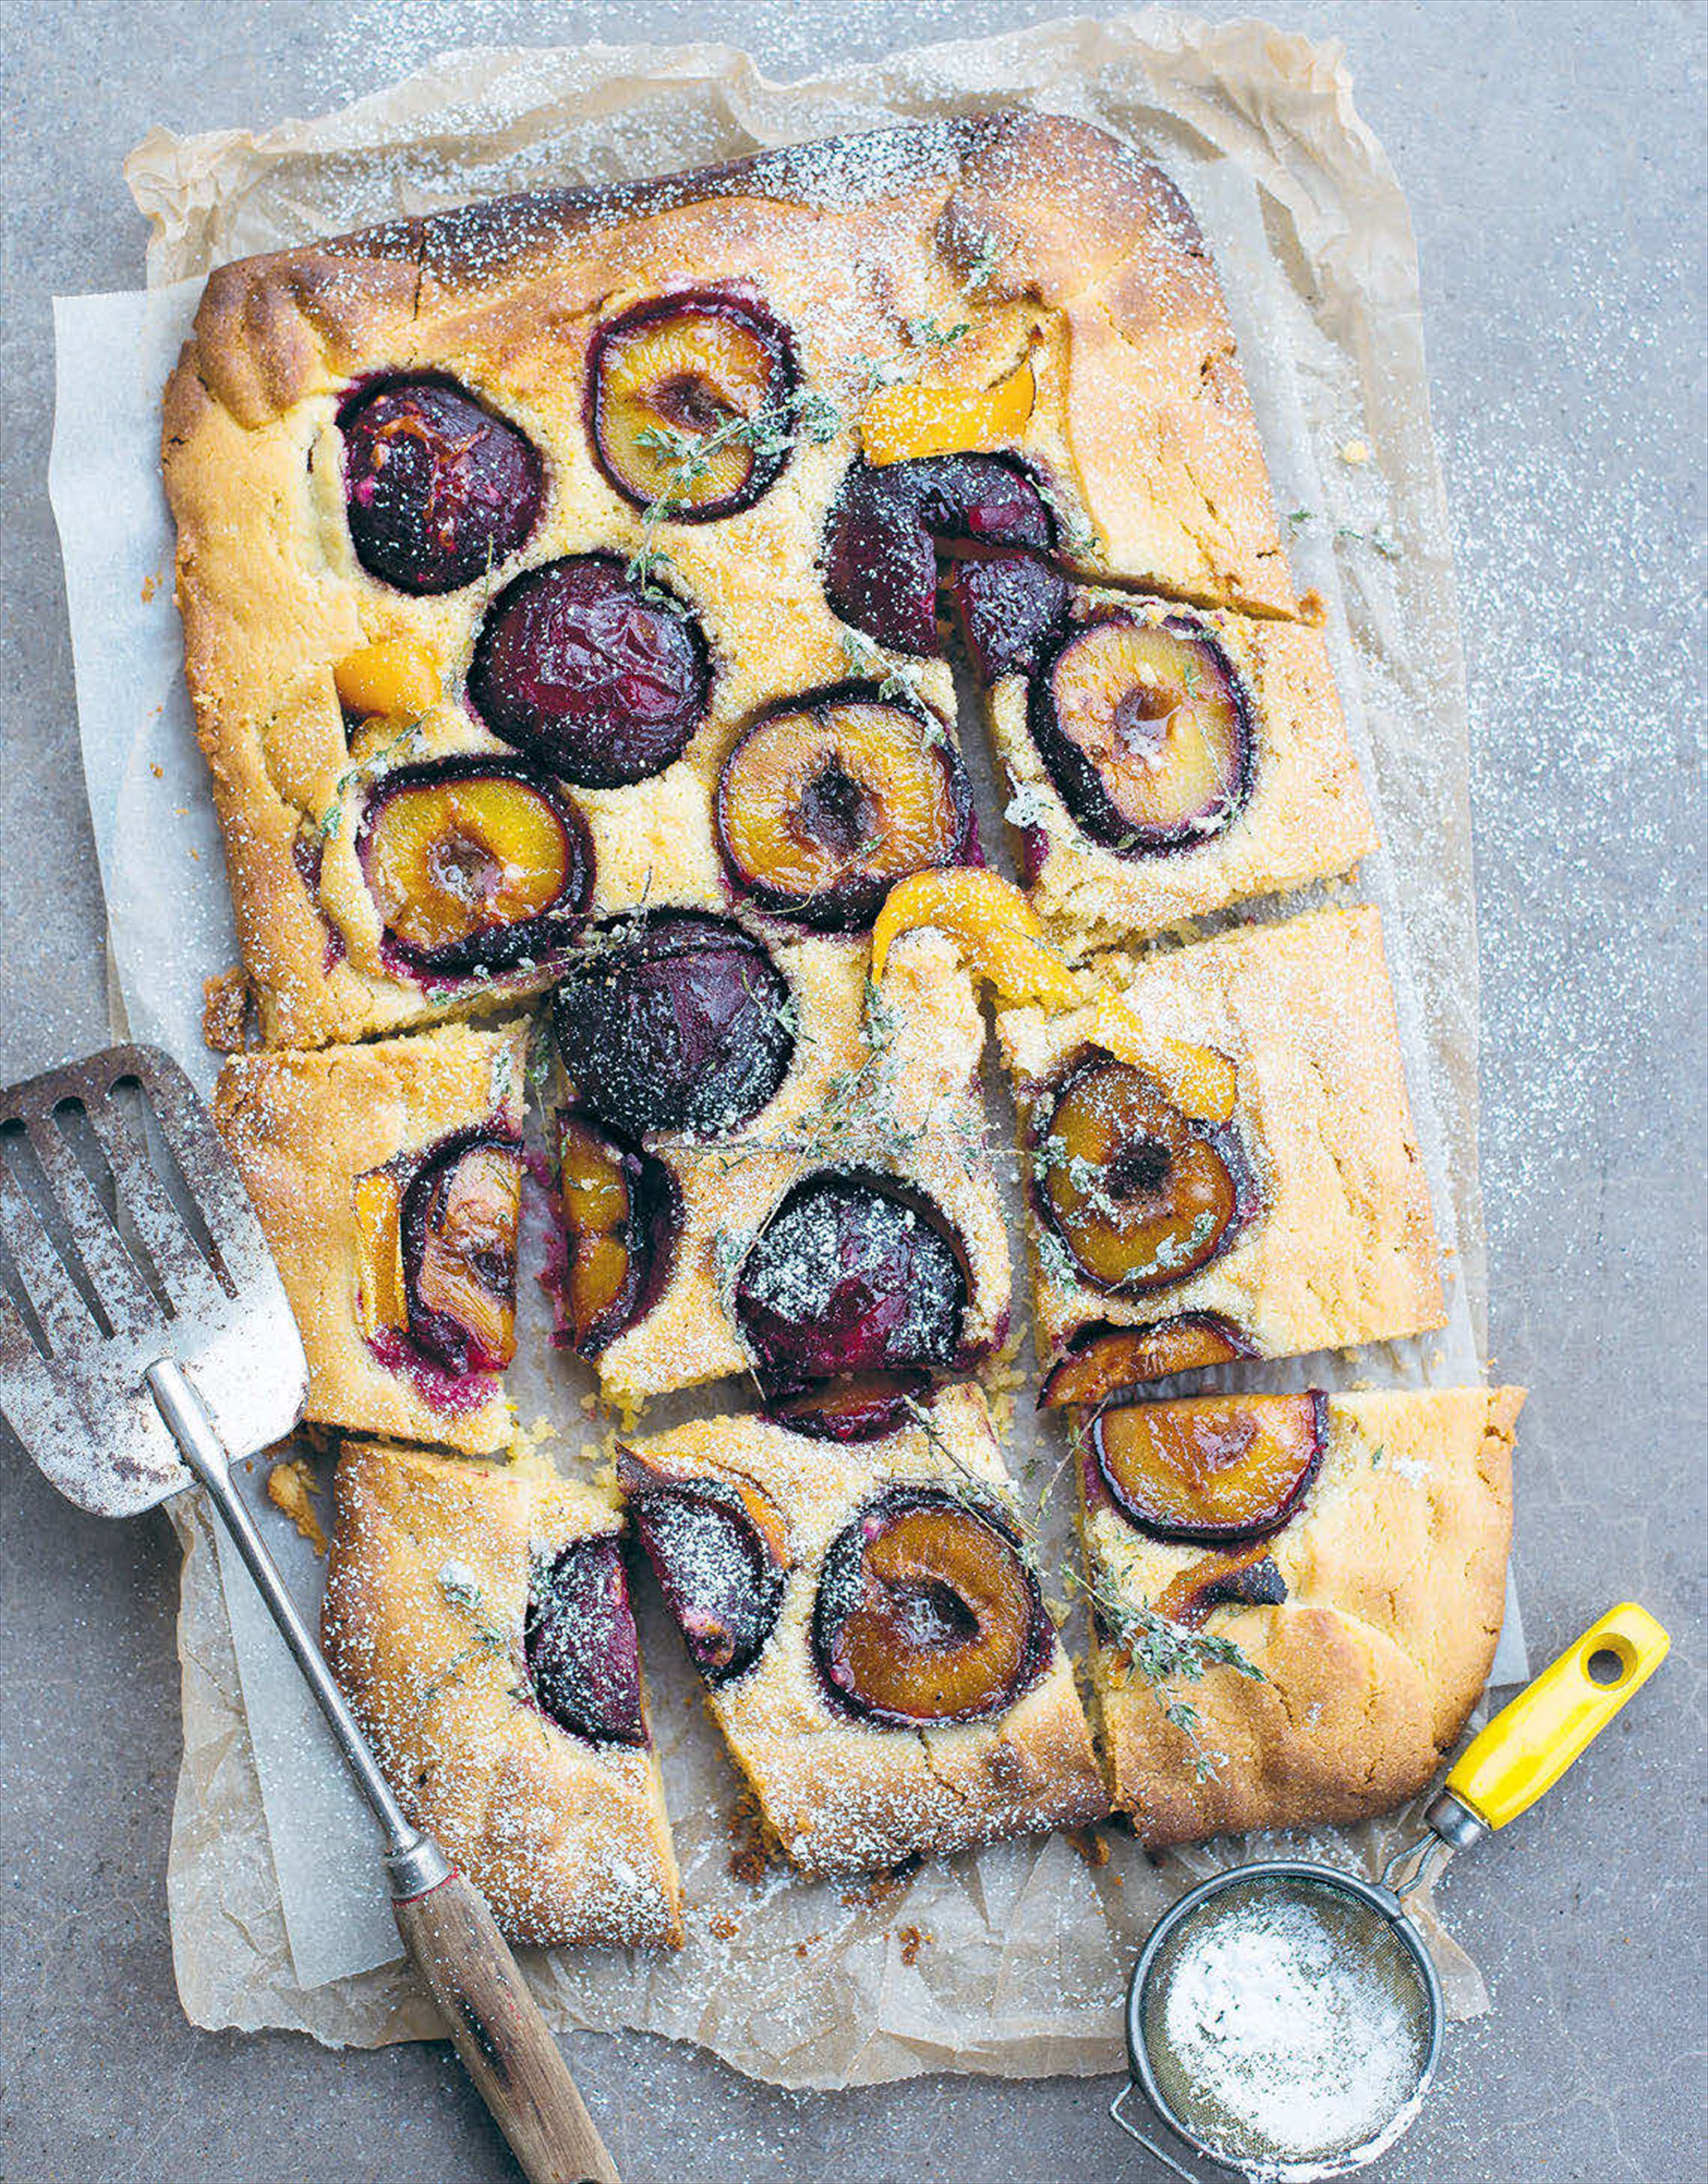 Plum, almond and orange blossom crostata with sugared thyme